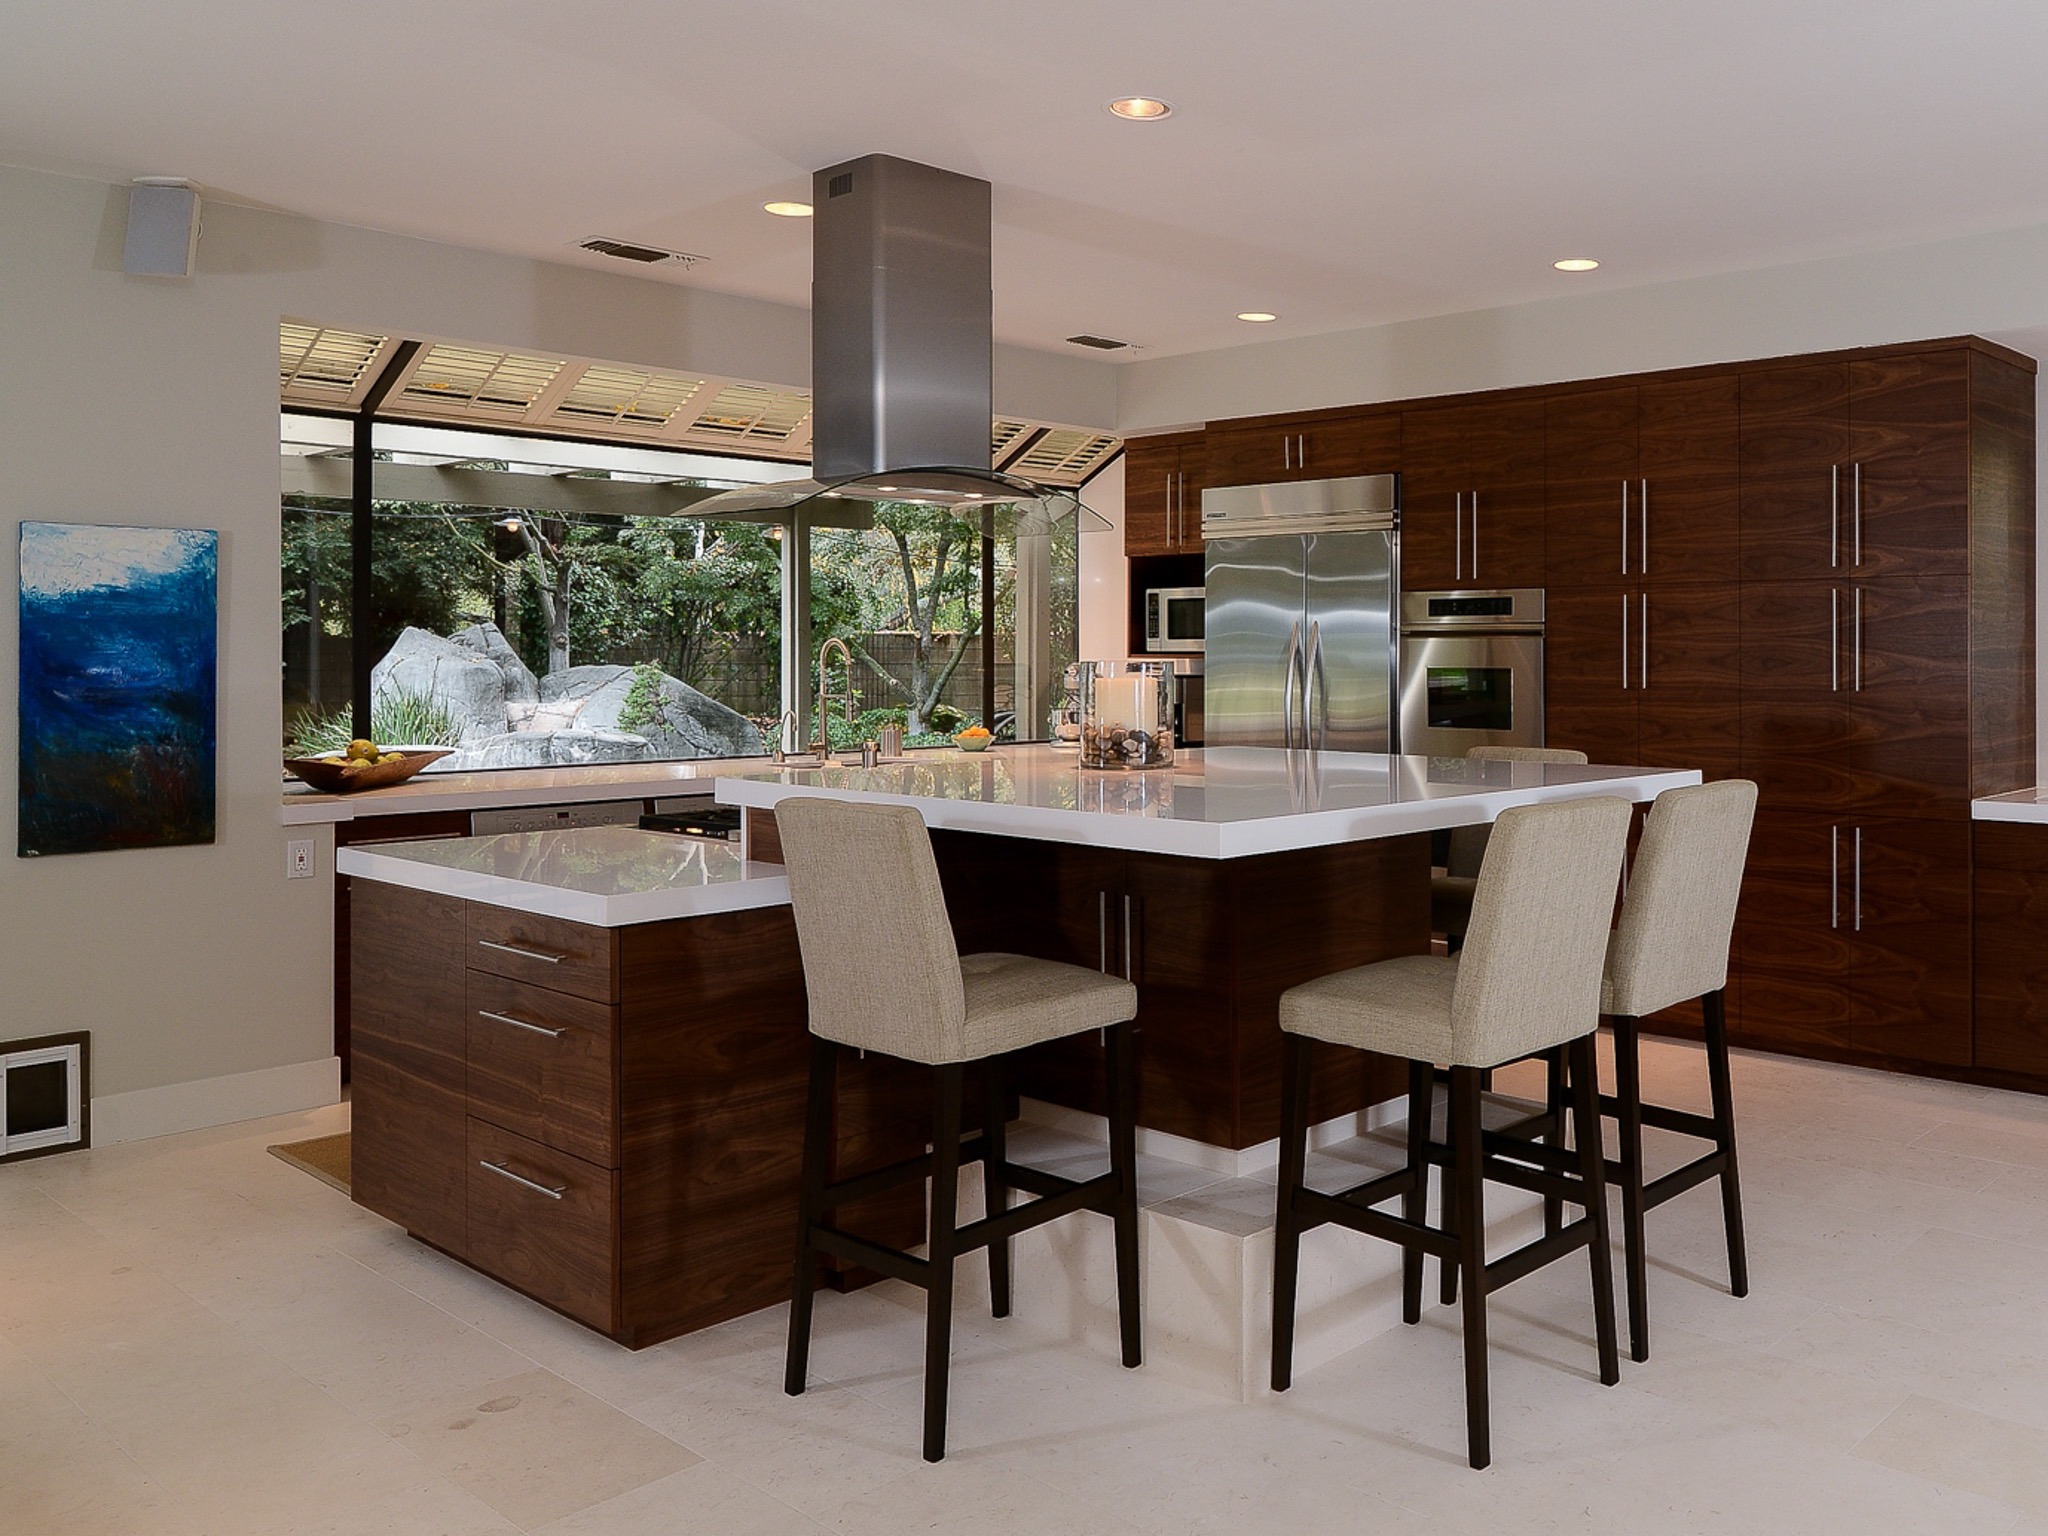 Contemporary Eat In Kitchen Interior (View 3 of 20)